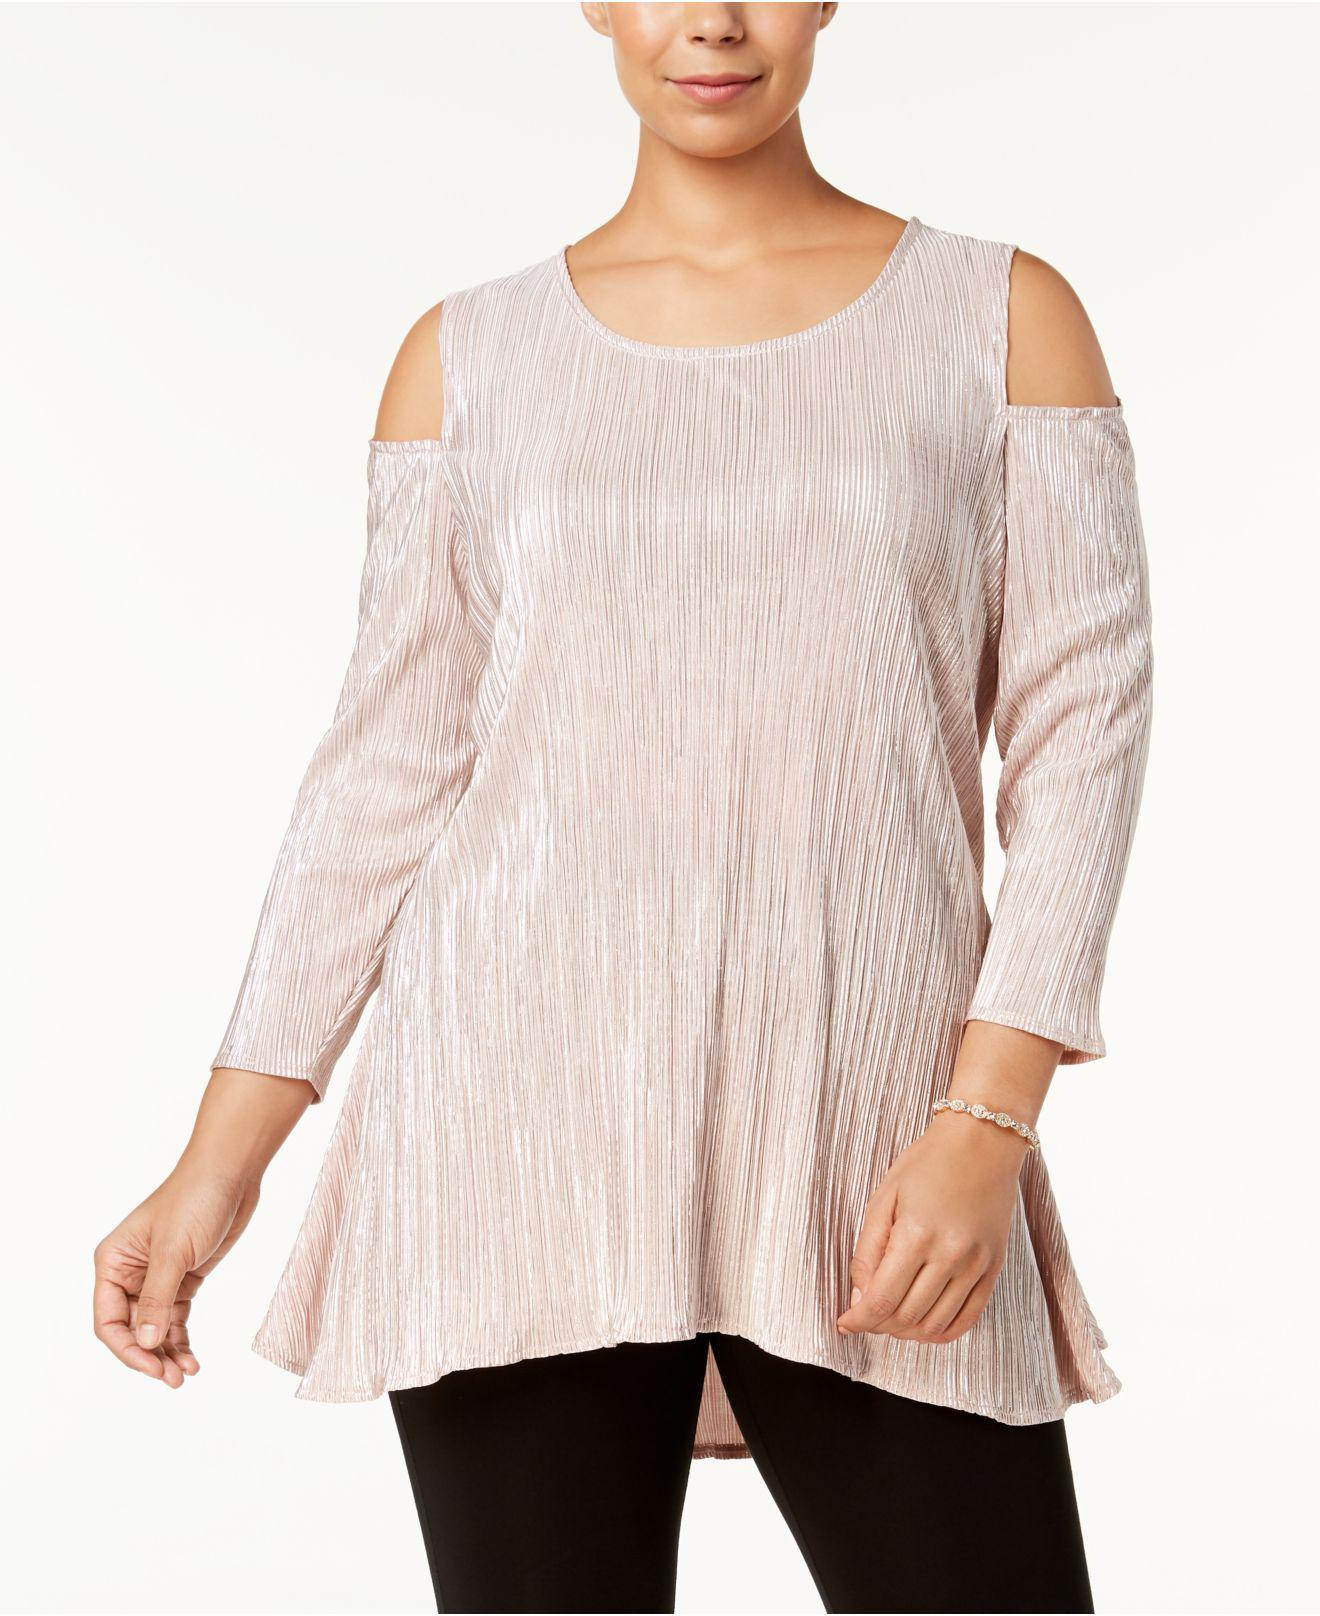 99bcb916d1912 Gallery. Previously sold at  Macy s · Women s Cold Shoulder T Shirts ...